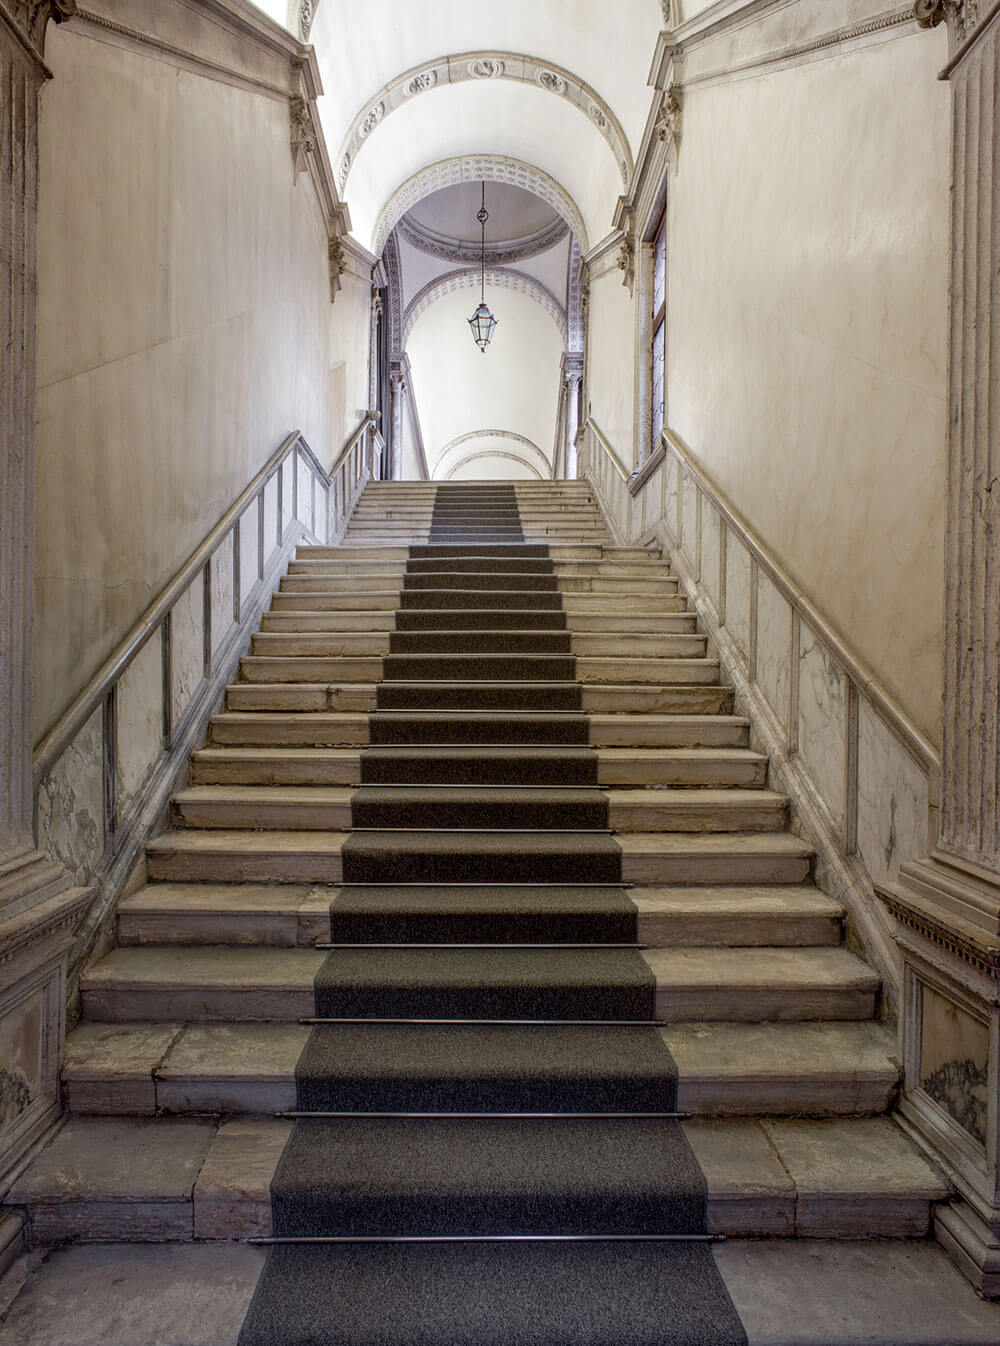 Monumental staircase, 1498 by Mauro Codussi